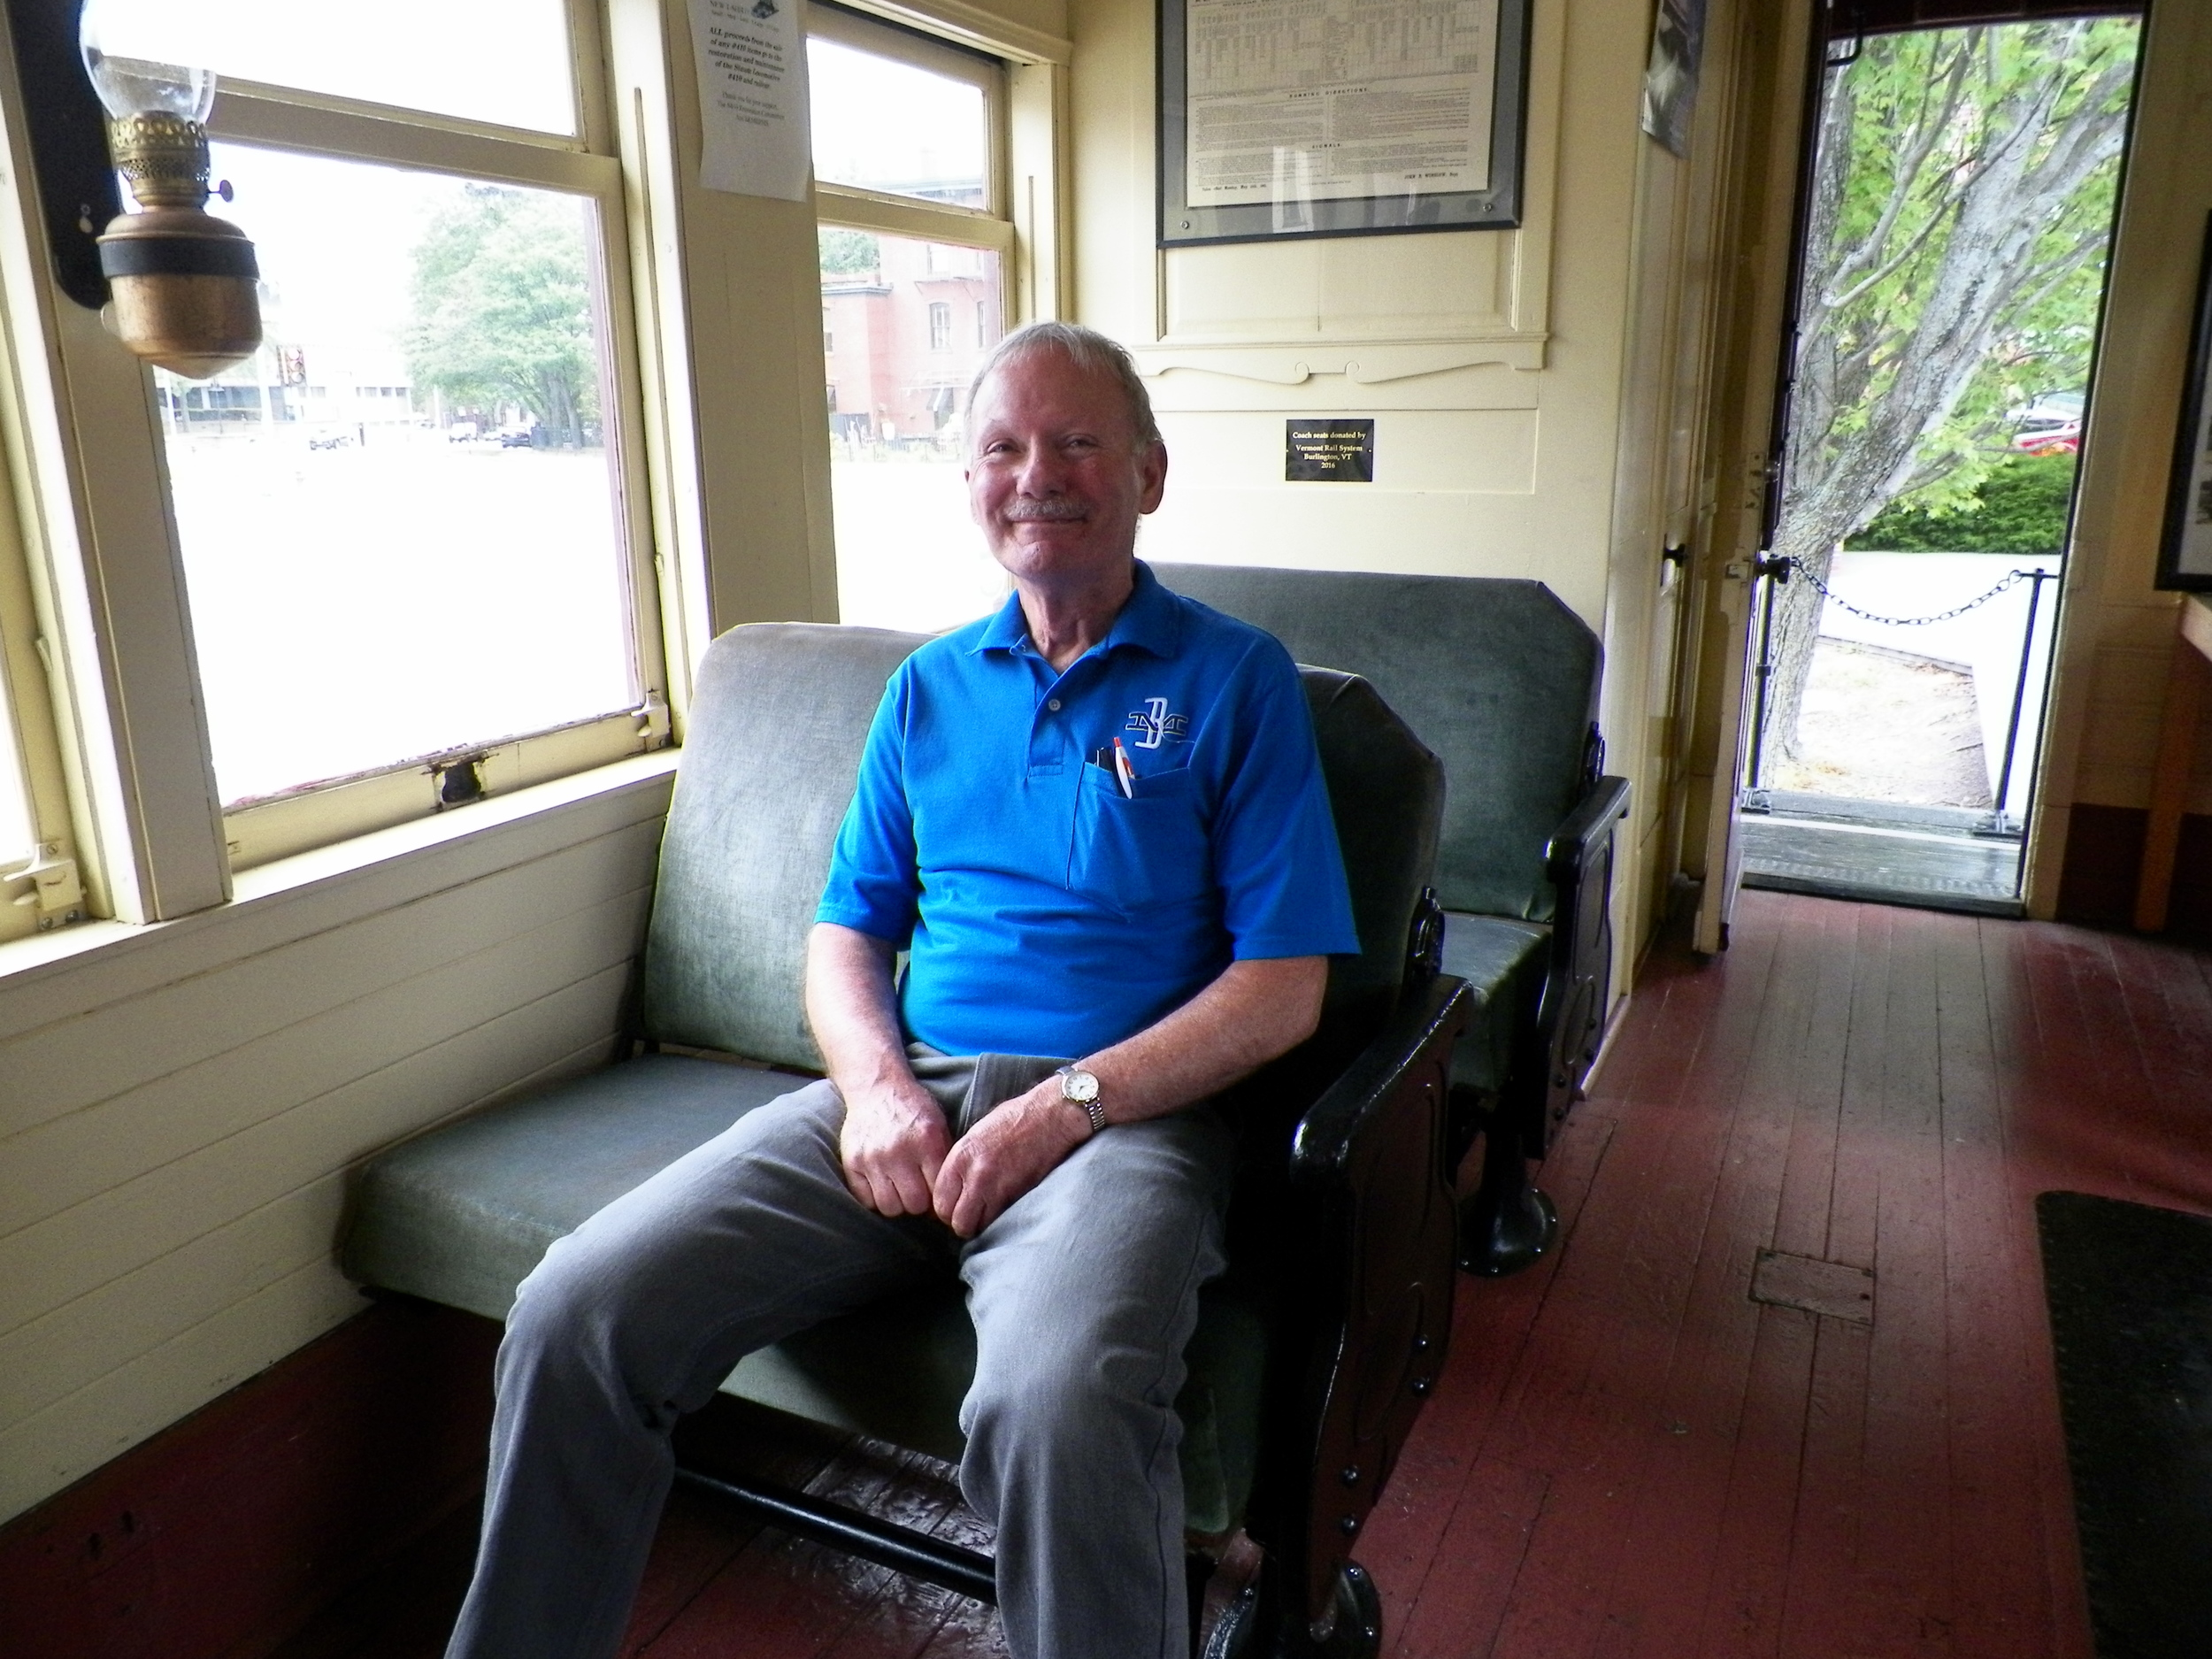 B&MRRHS volunteer Mal Sockol tries out new coach seats recently donated to B&MRRHS by Vermont Rail System. Richard Nichols photo